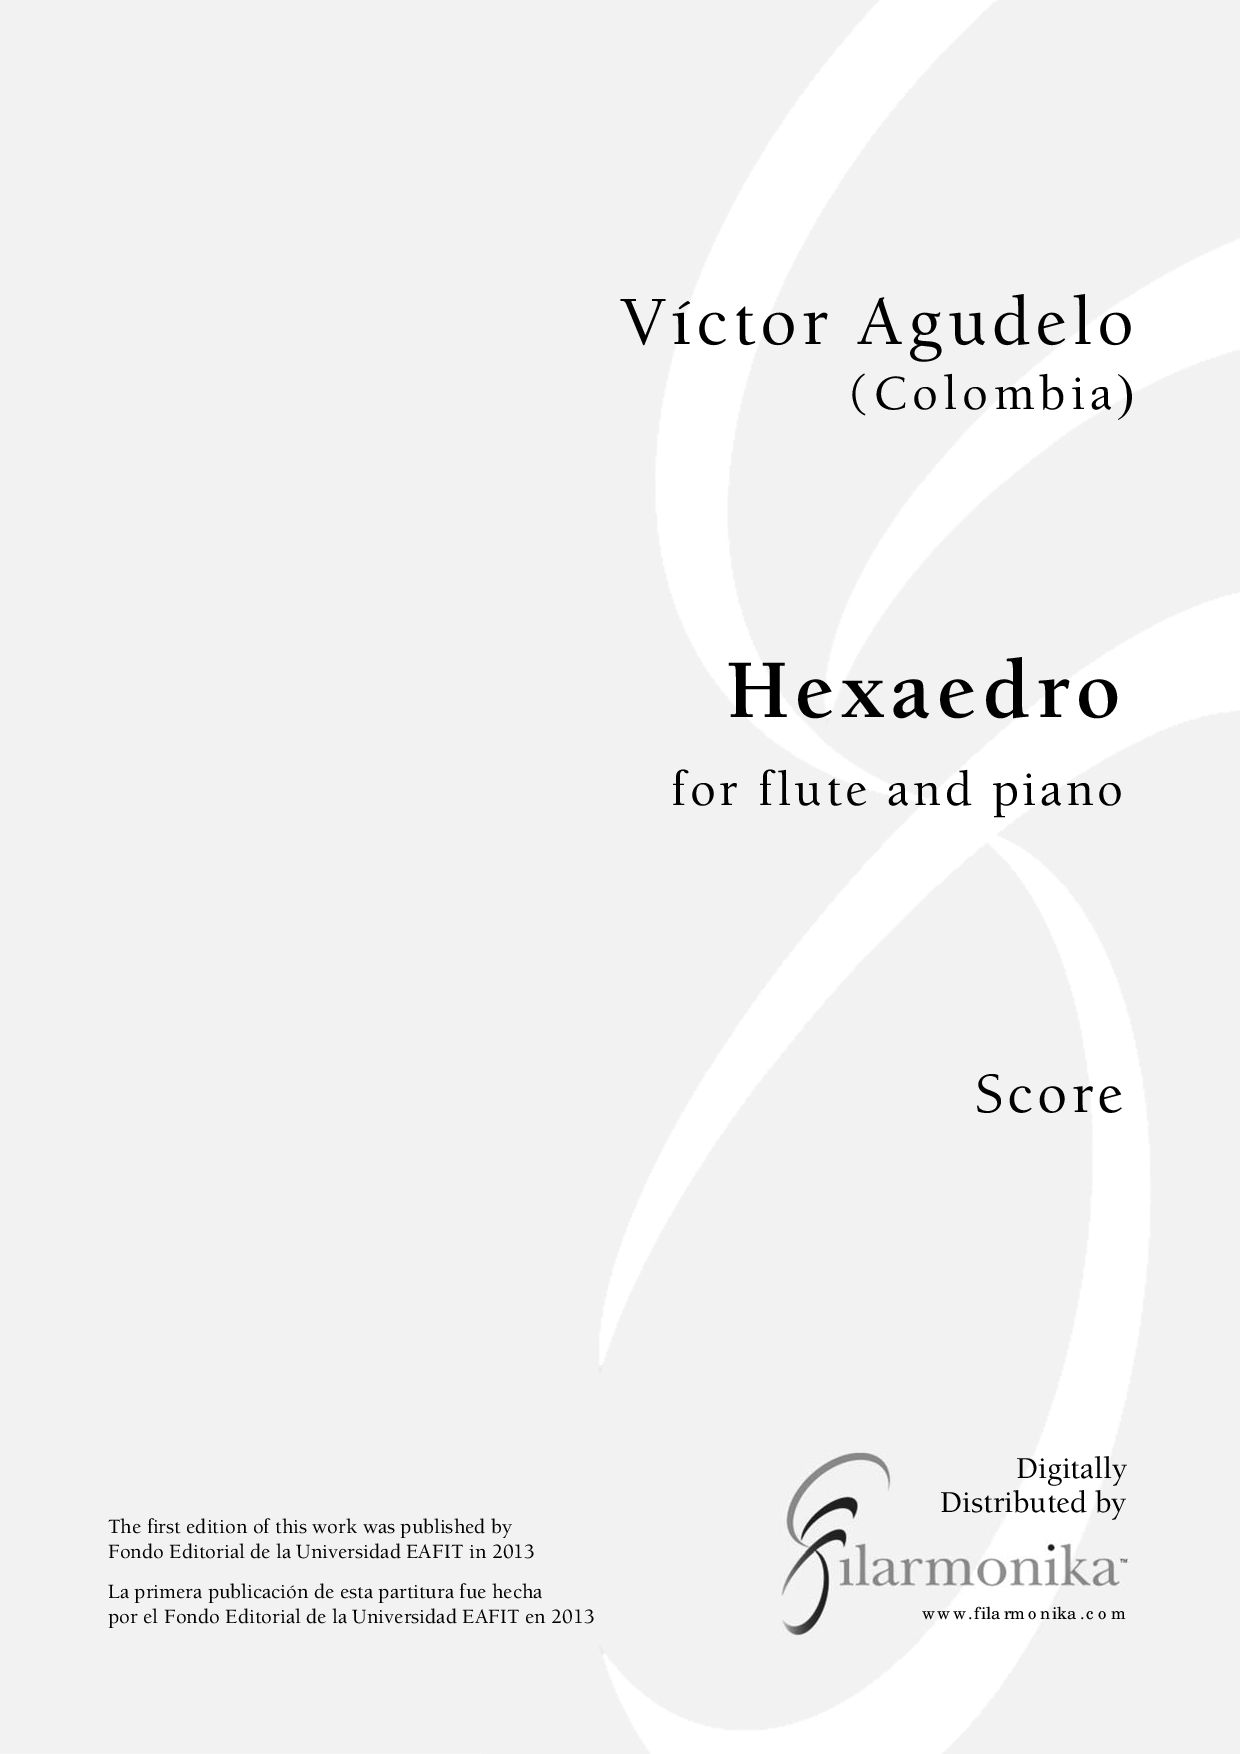 Hexaedro, for flute and piano